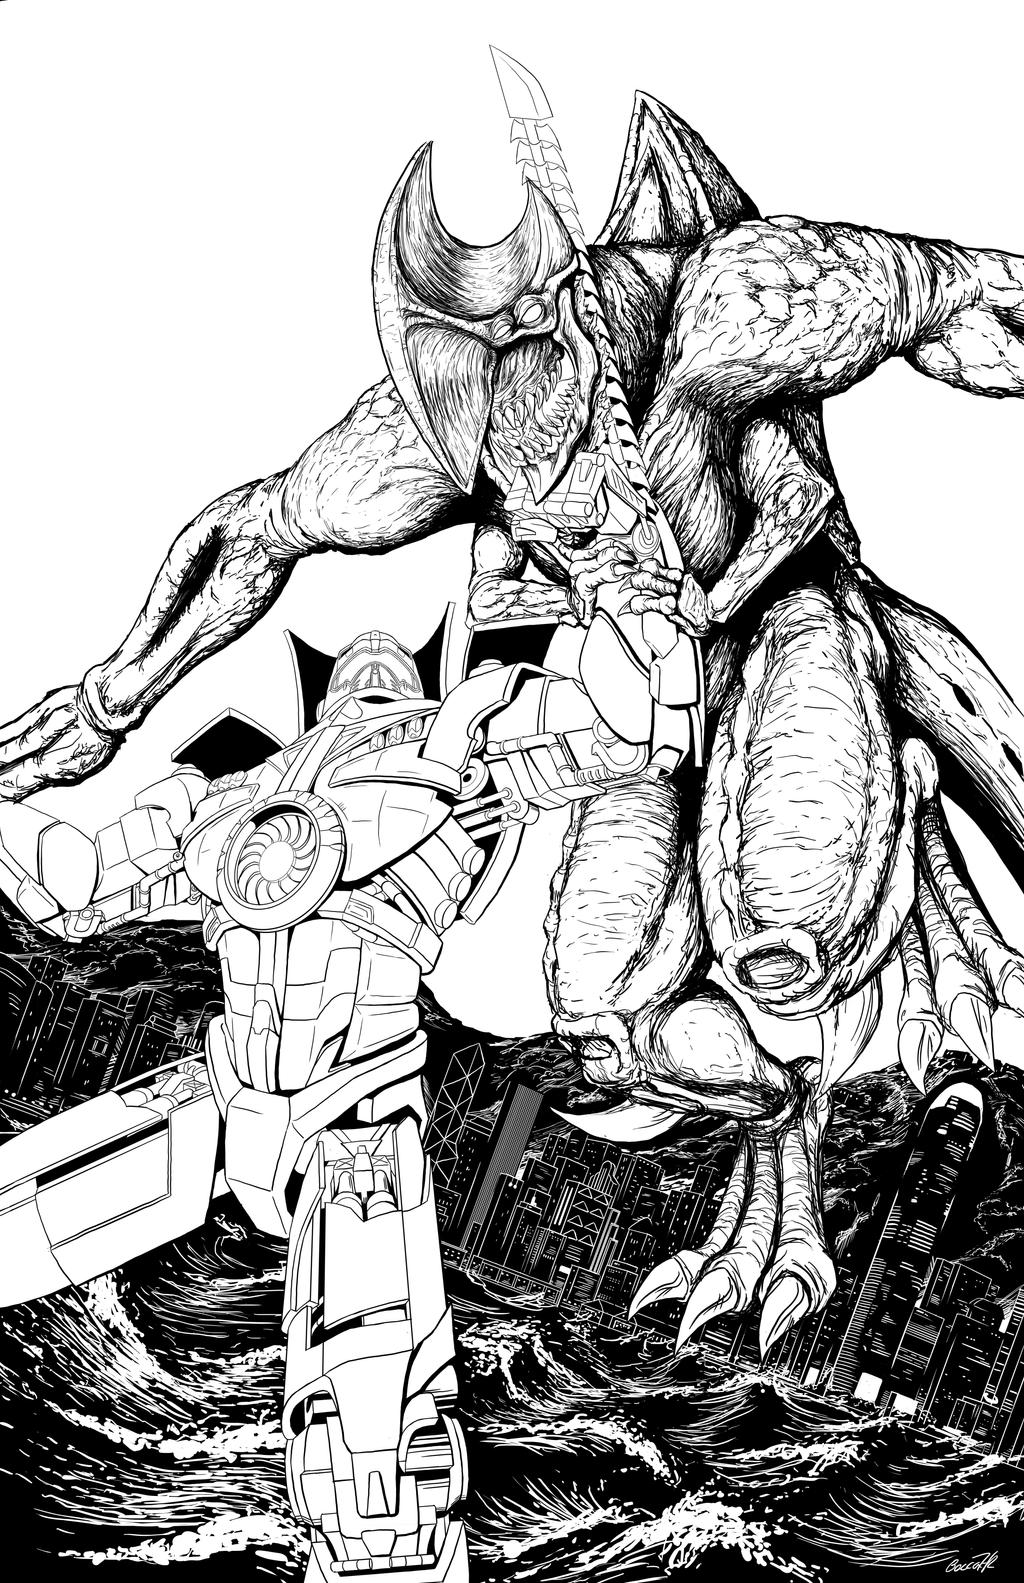 Pacific Rim inks by ShamanMagic on DeviantArt